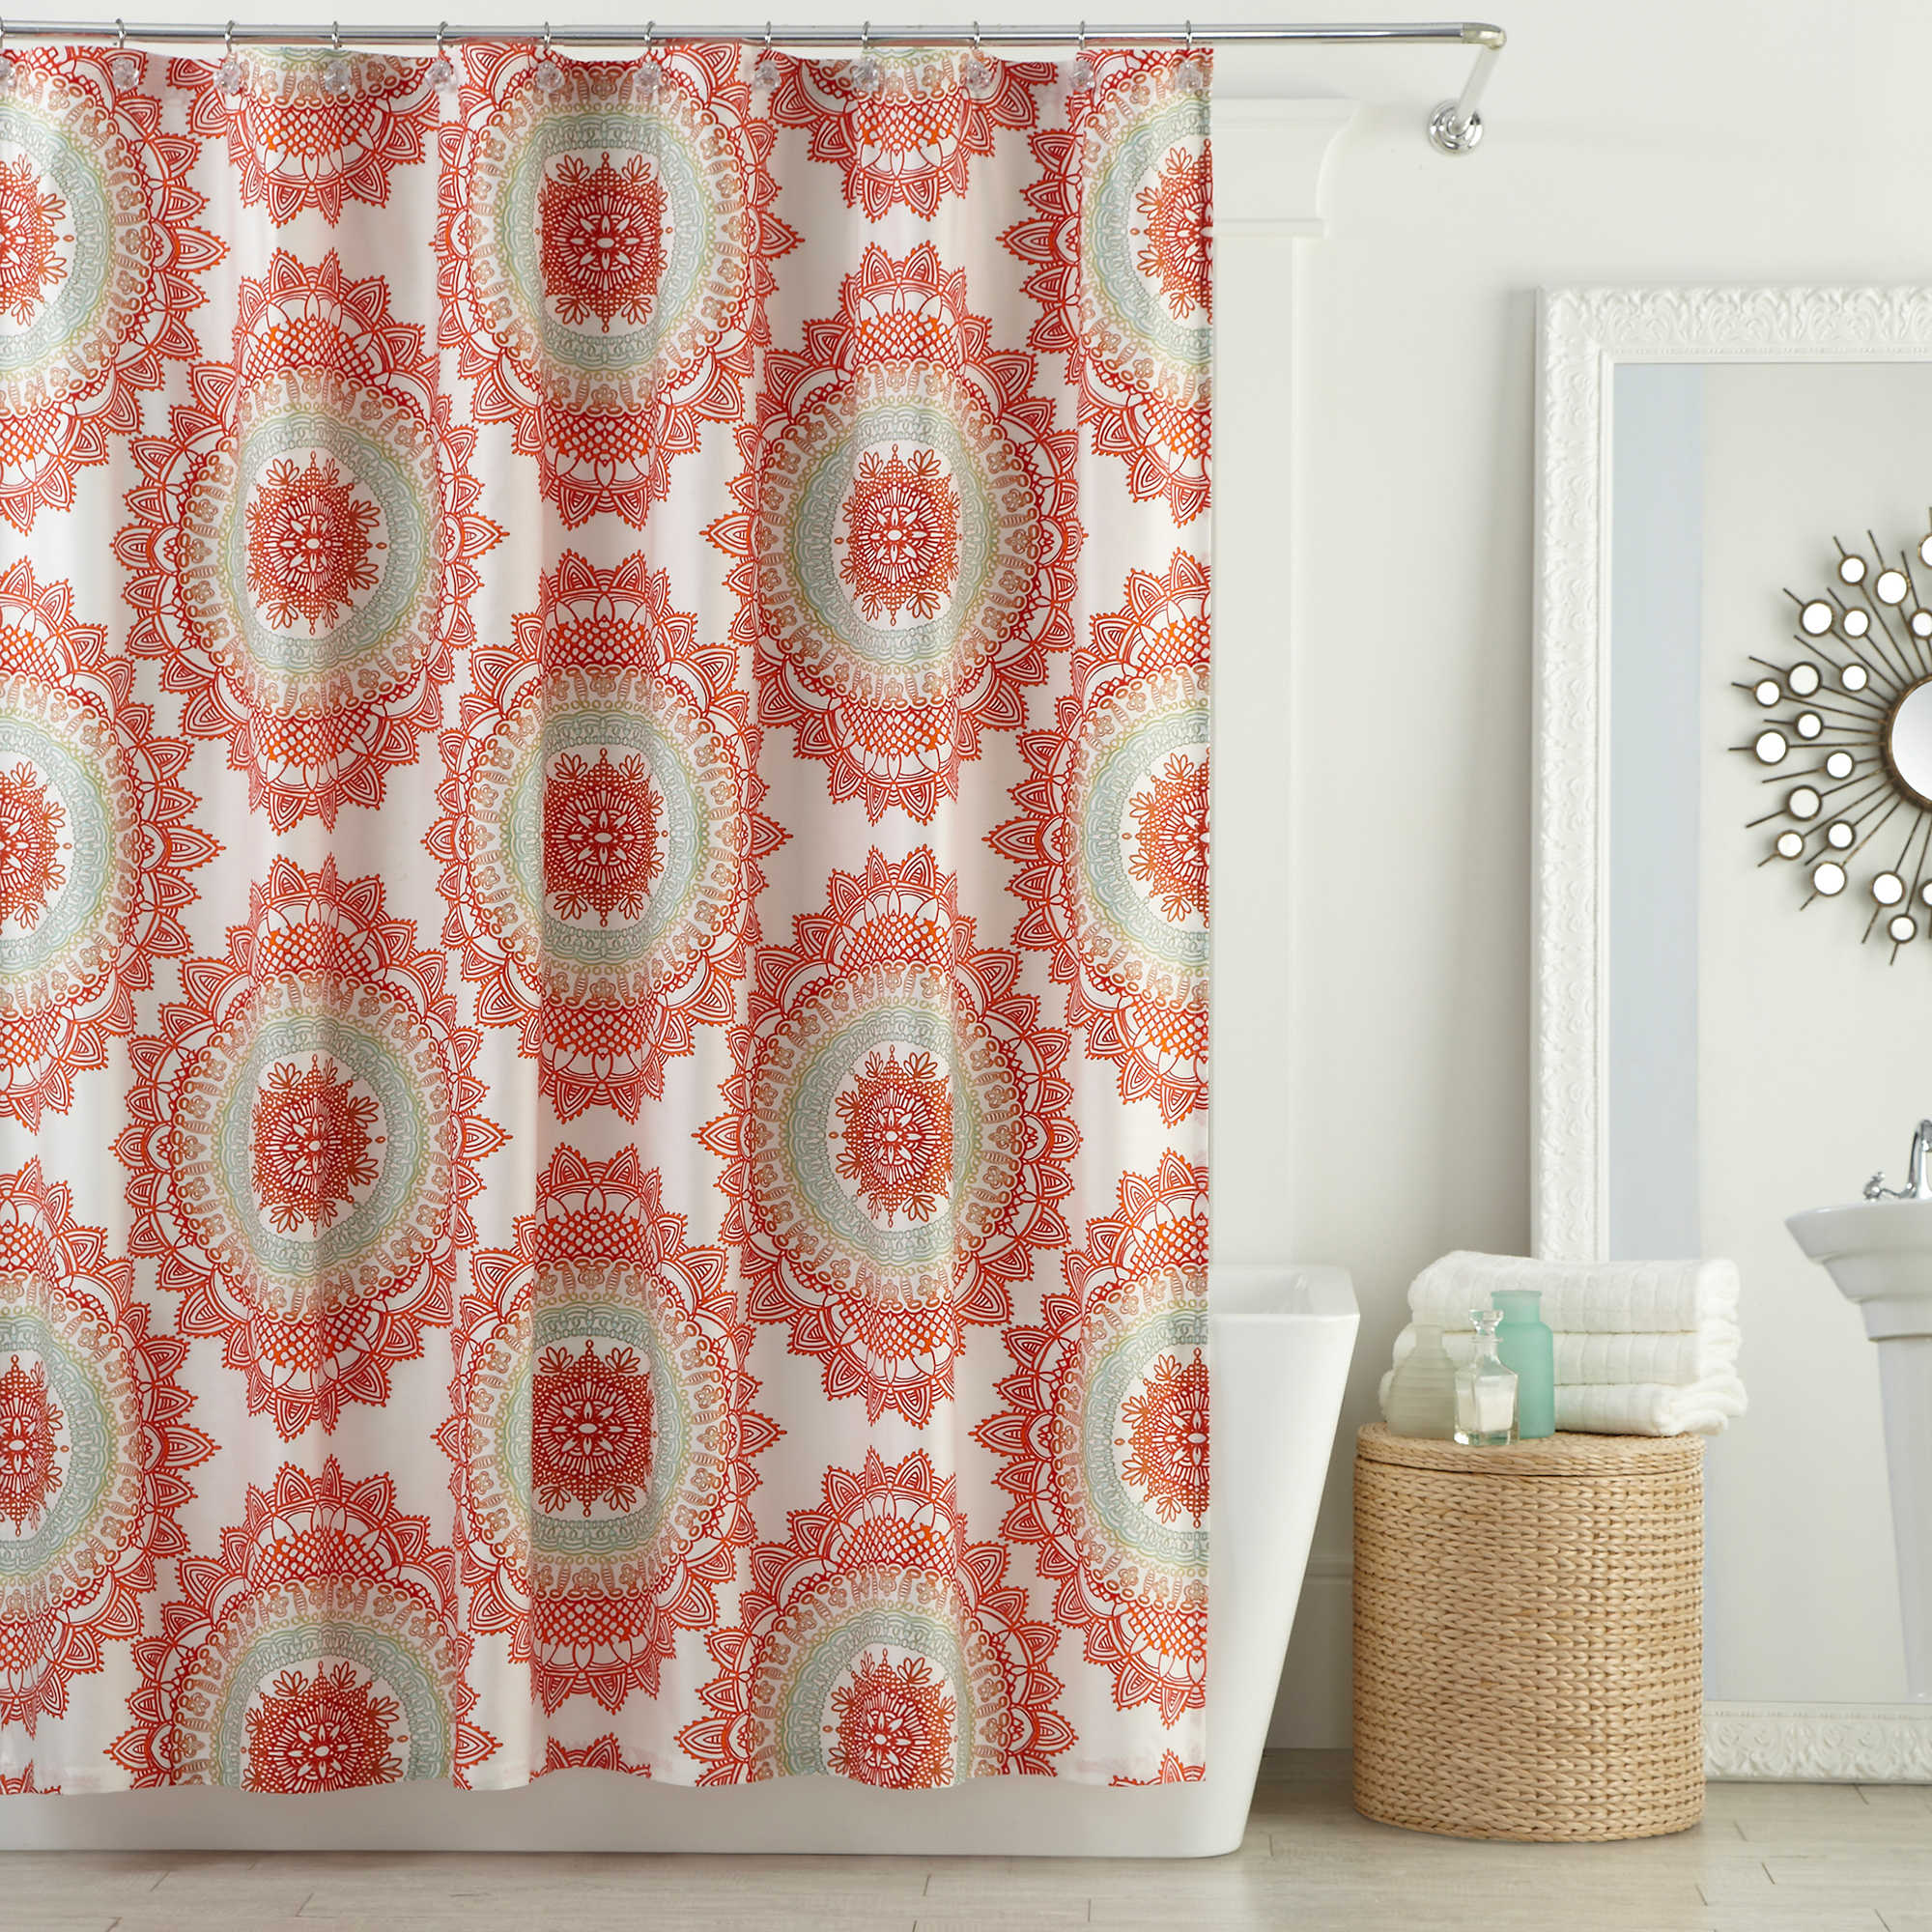 Bed Bath And Beyond Shower Curtains Offer Great Look And Functional HomesFeed